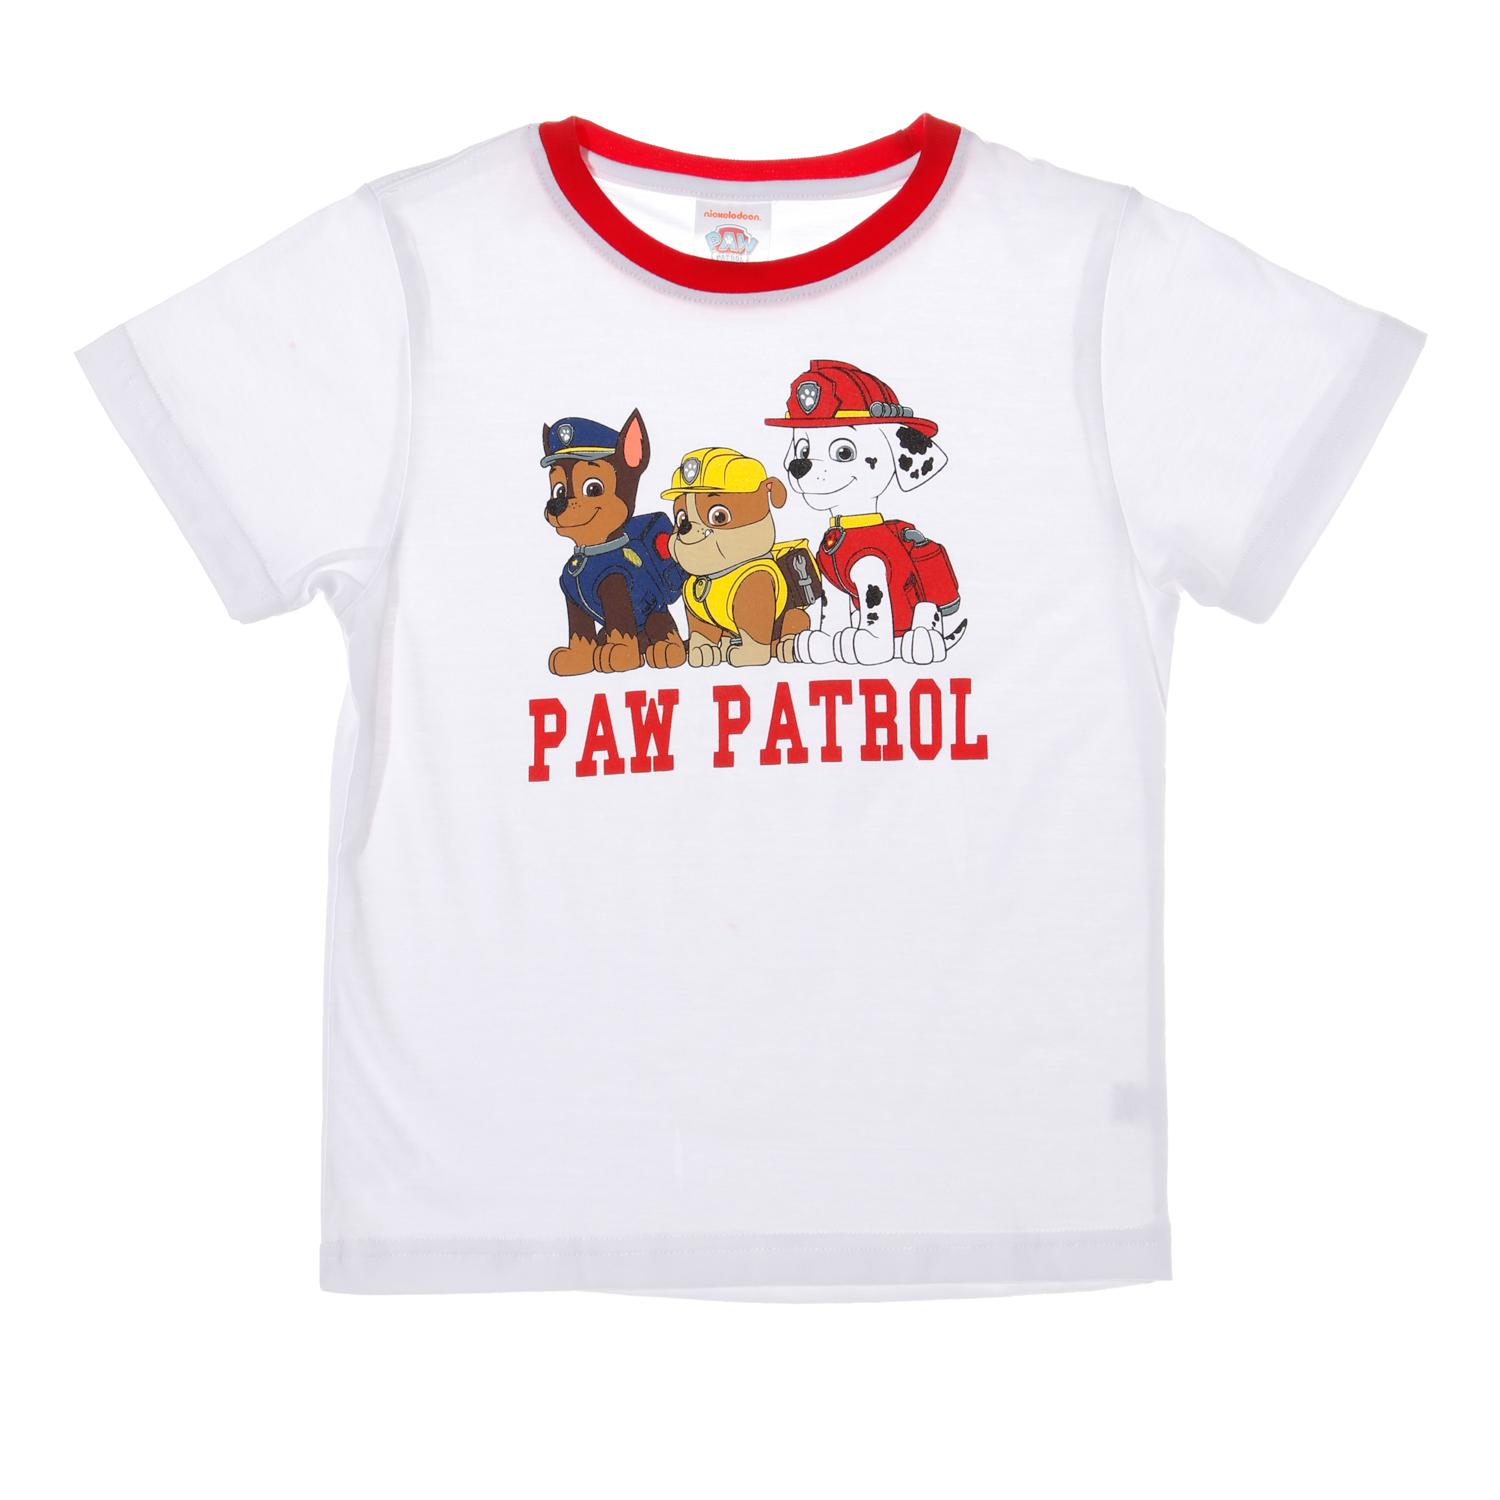 eed94f326 Paw Patrol Philippines: Paw Patrol price list - Toys, Collectibles ...